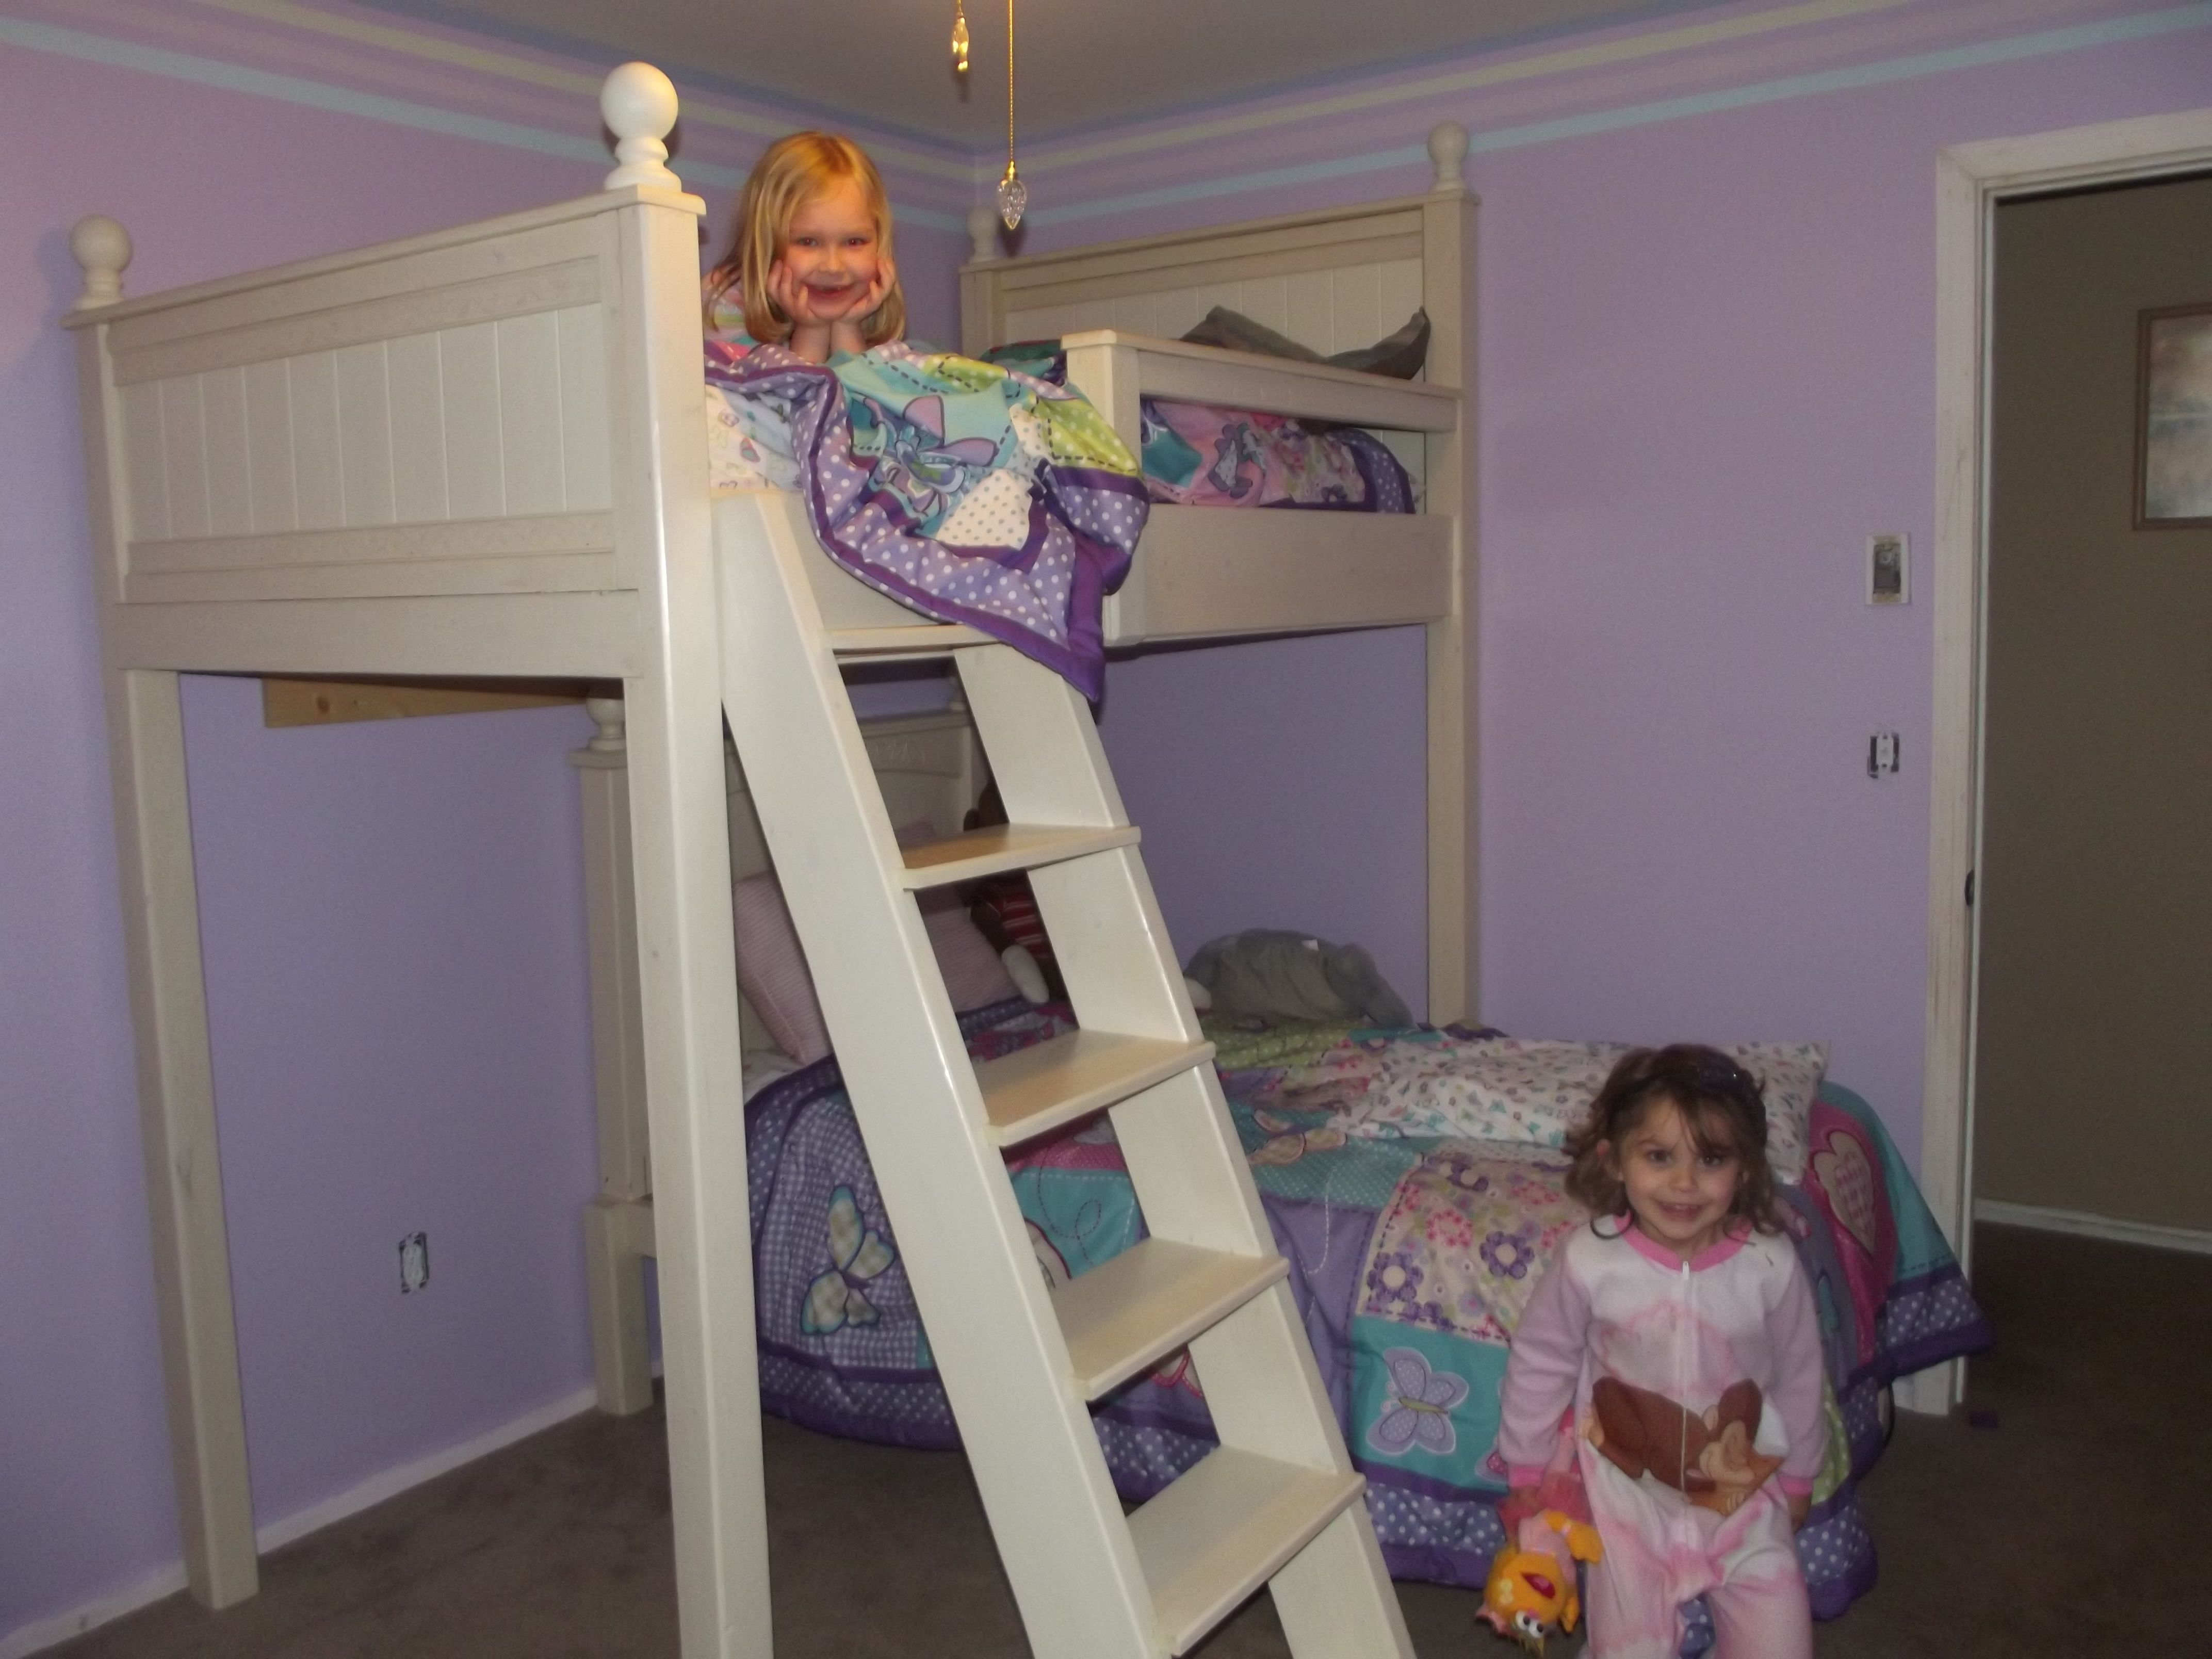 Loft beds for kids diy  DIY loftbunk beds my hubby is awesome  DIY home  Pinterest